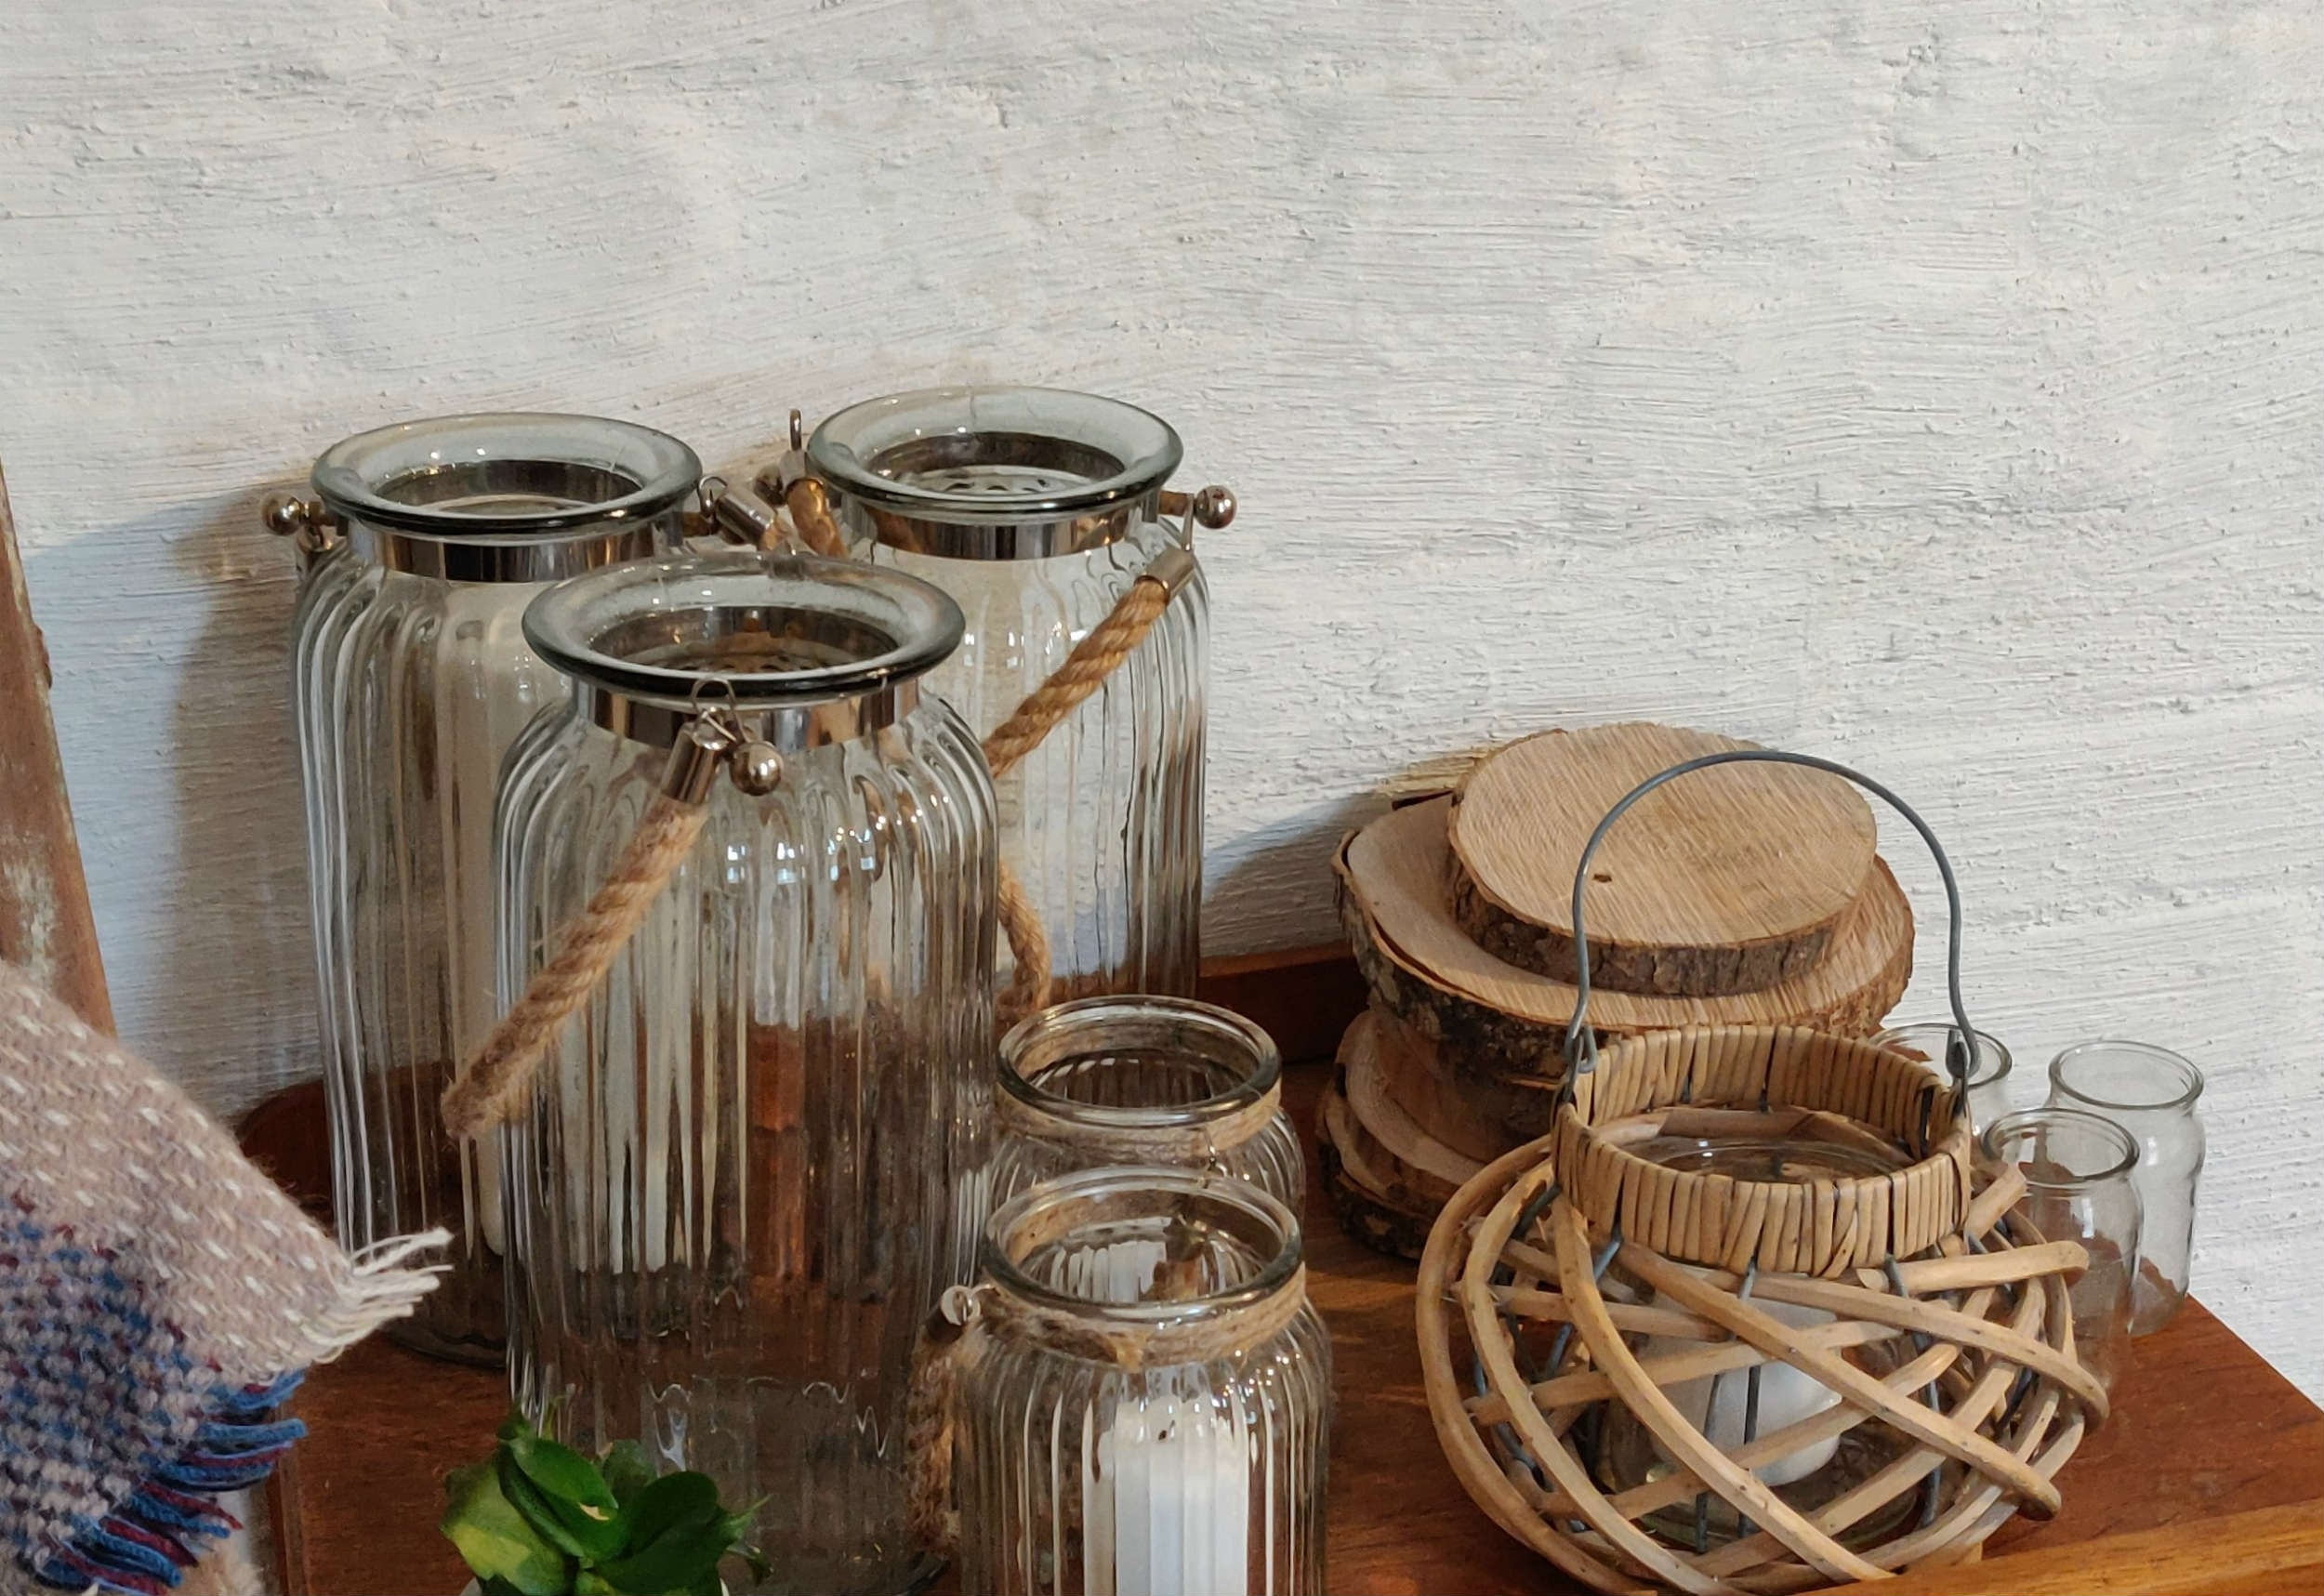 Glass Lanterns/Vases - Large Hire £4 each; Medium Hire £2.50 each //  Wicker lantern Hire £2.50 each // Log rounds - various sizes Hire from £1